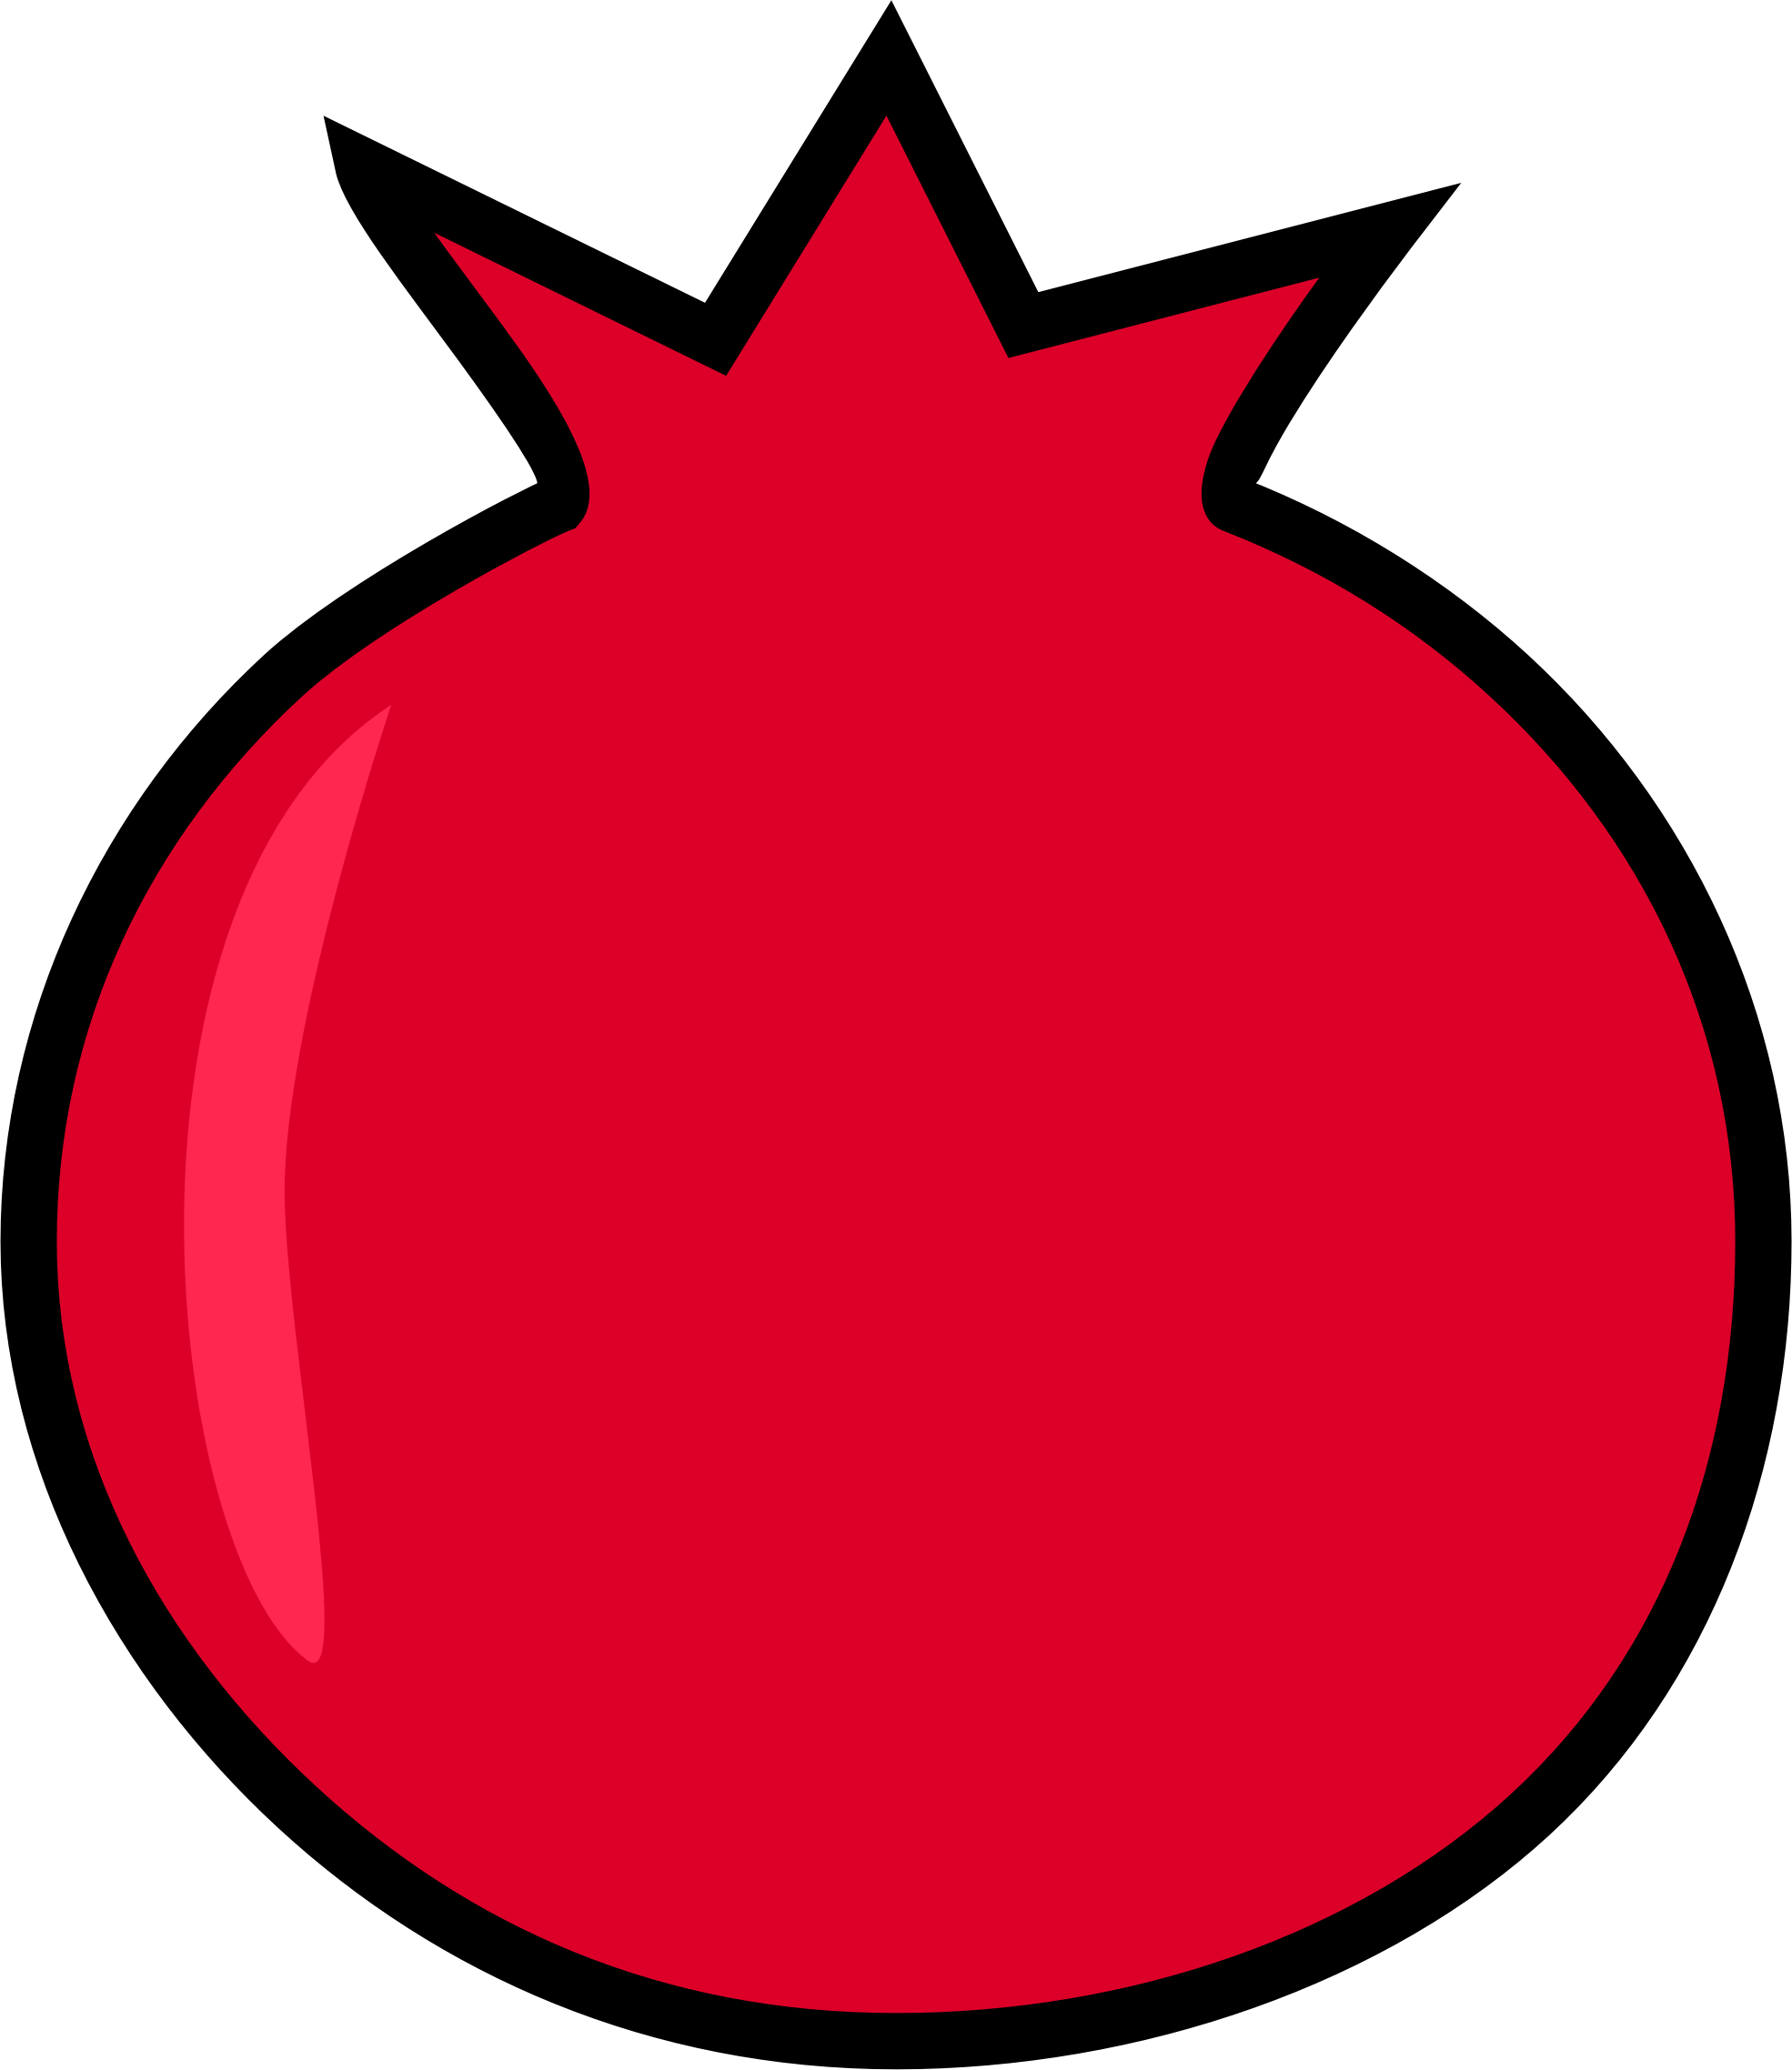 Pomegranate clipart. Big image png